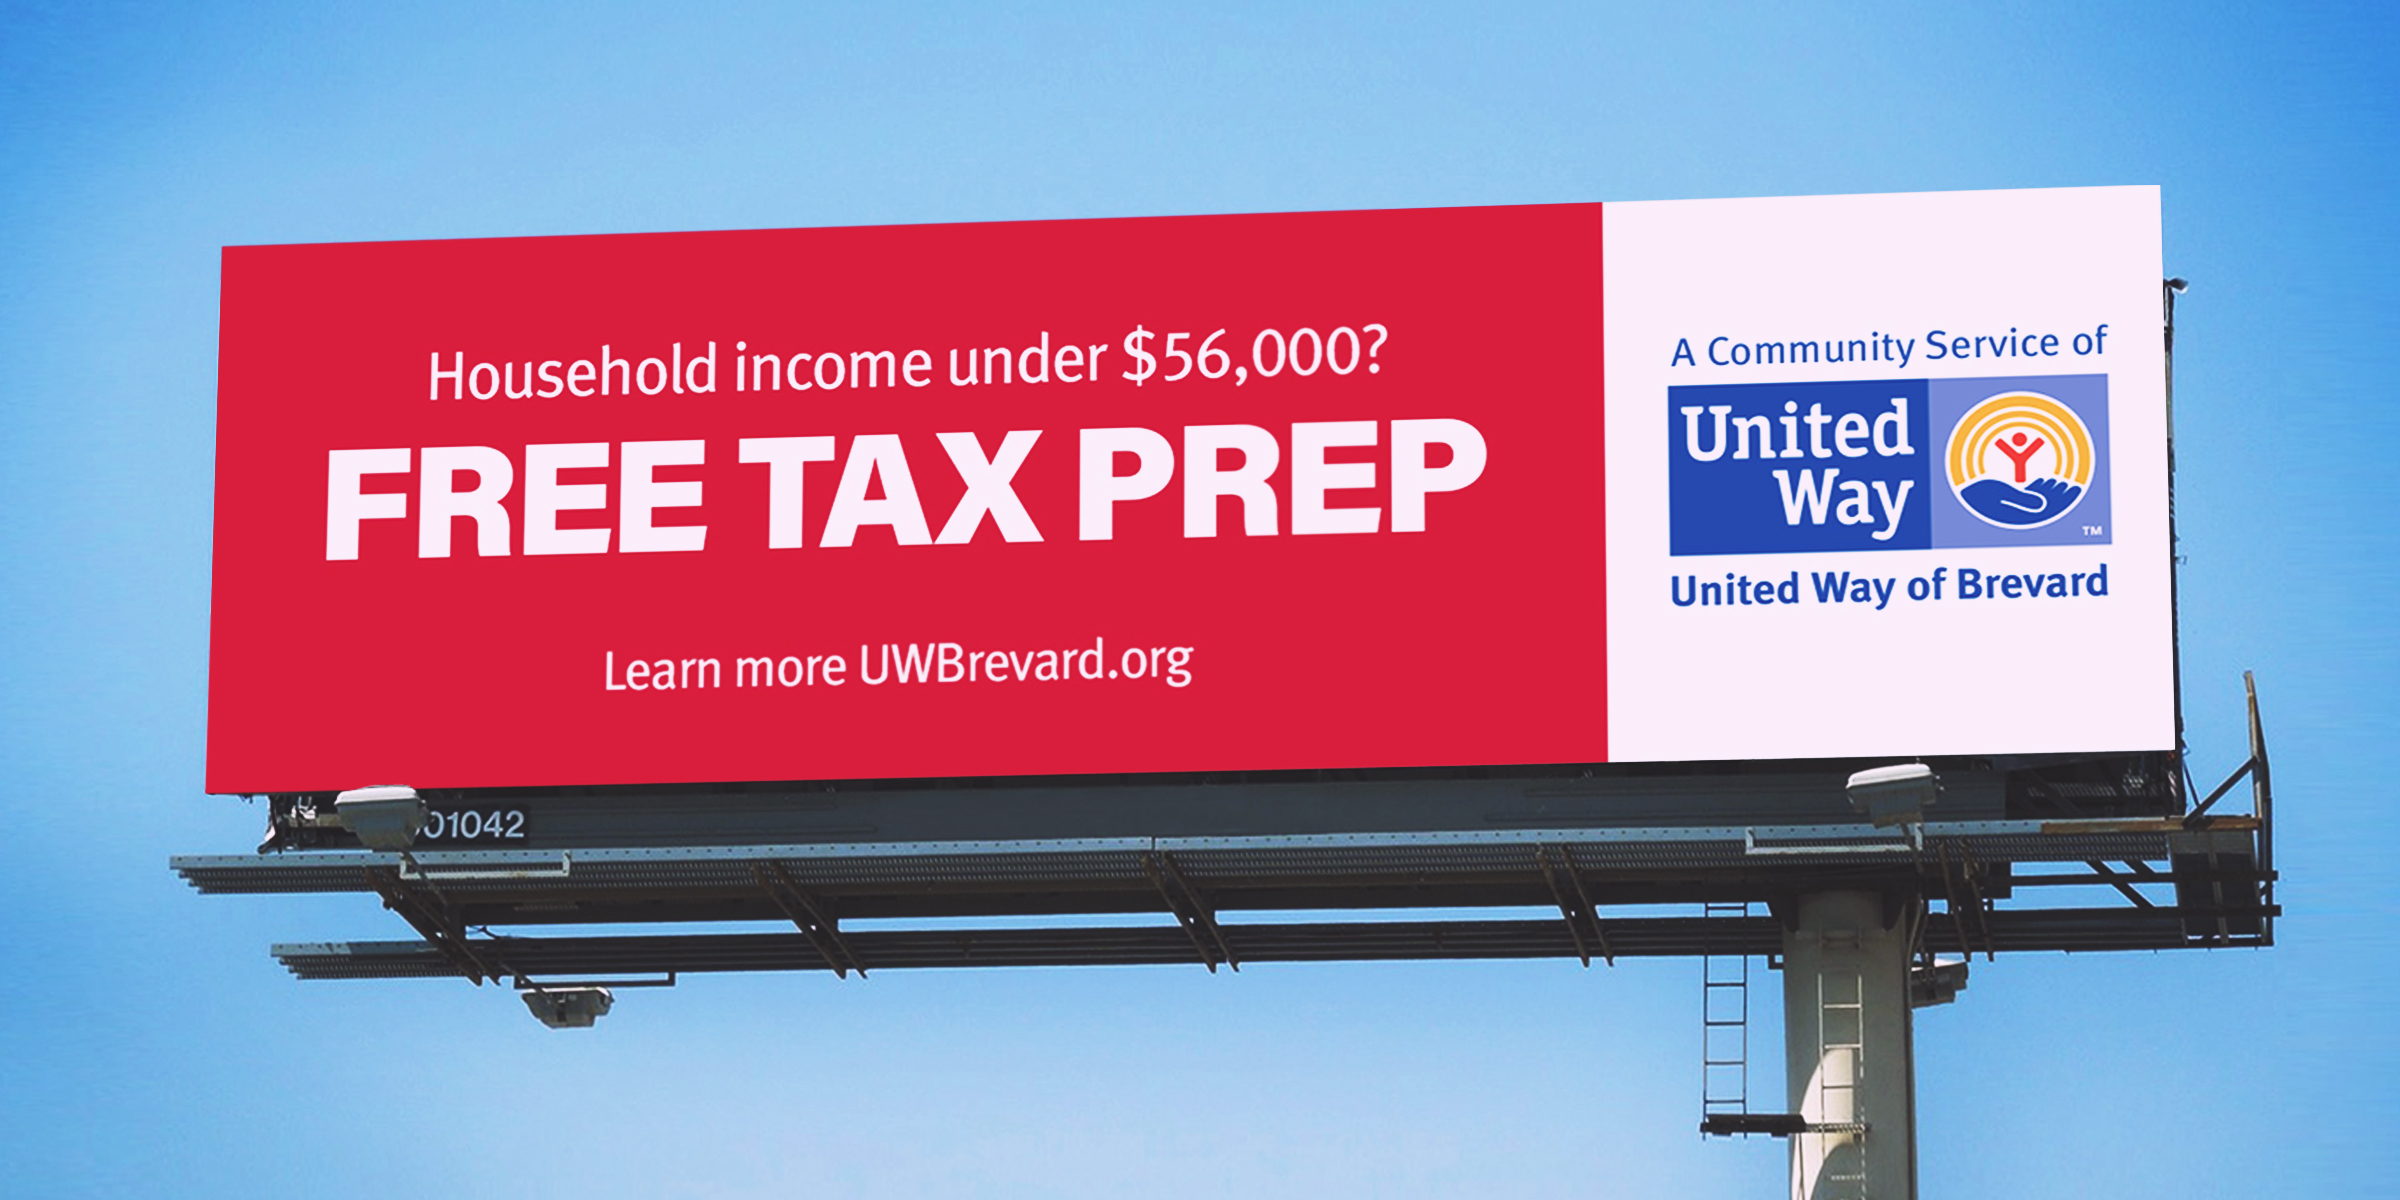 United way tax prep billboard